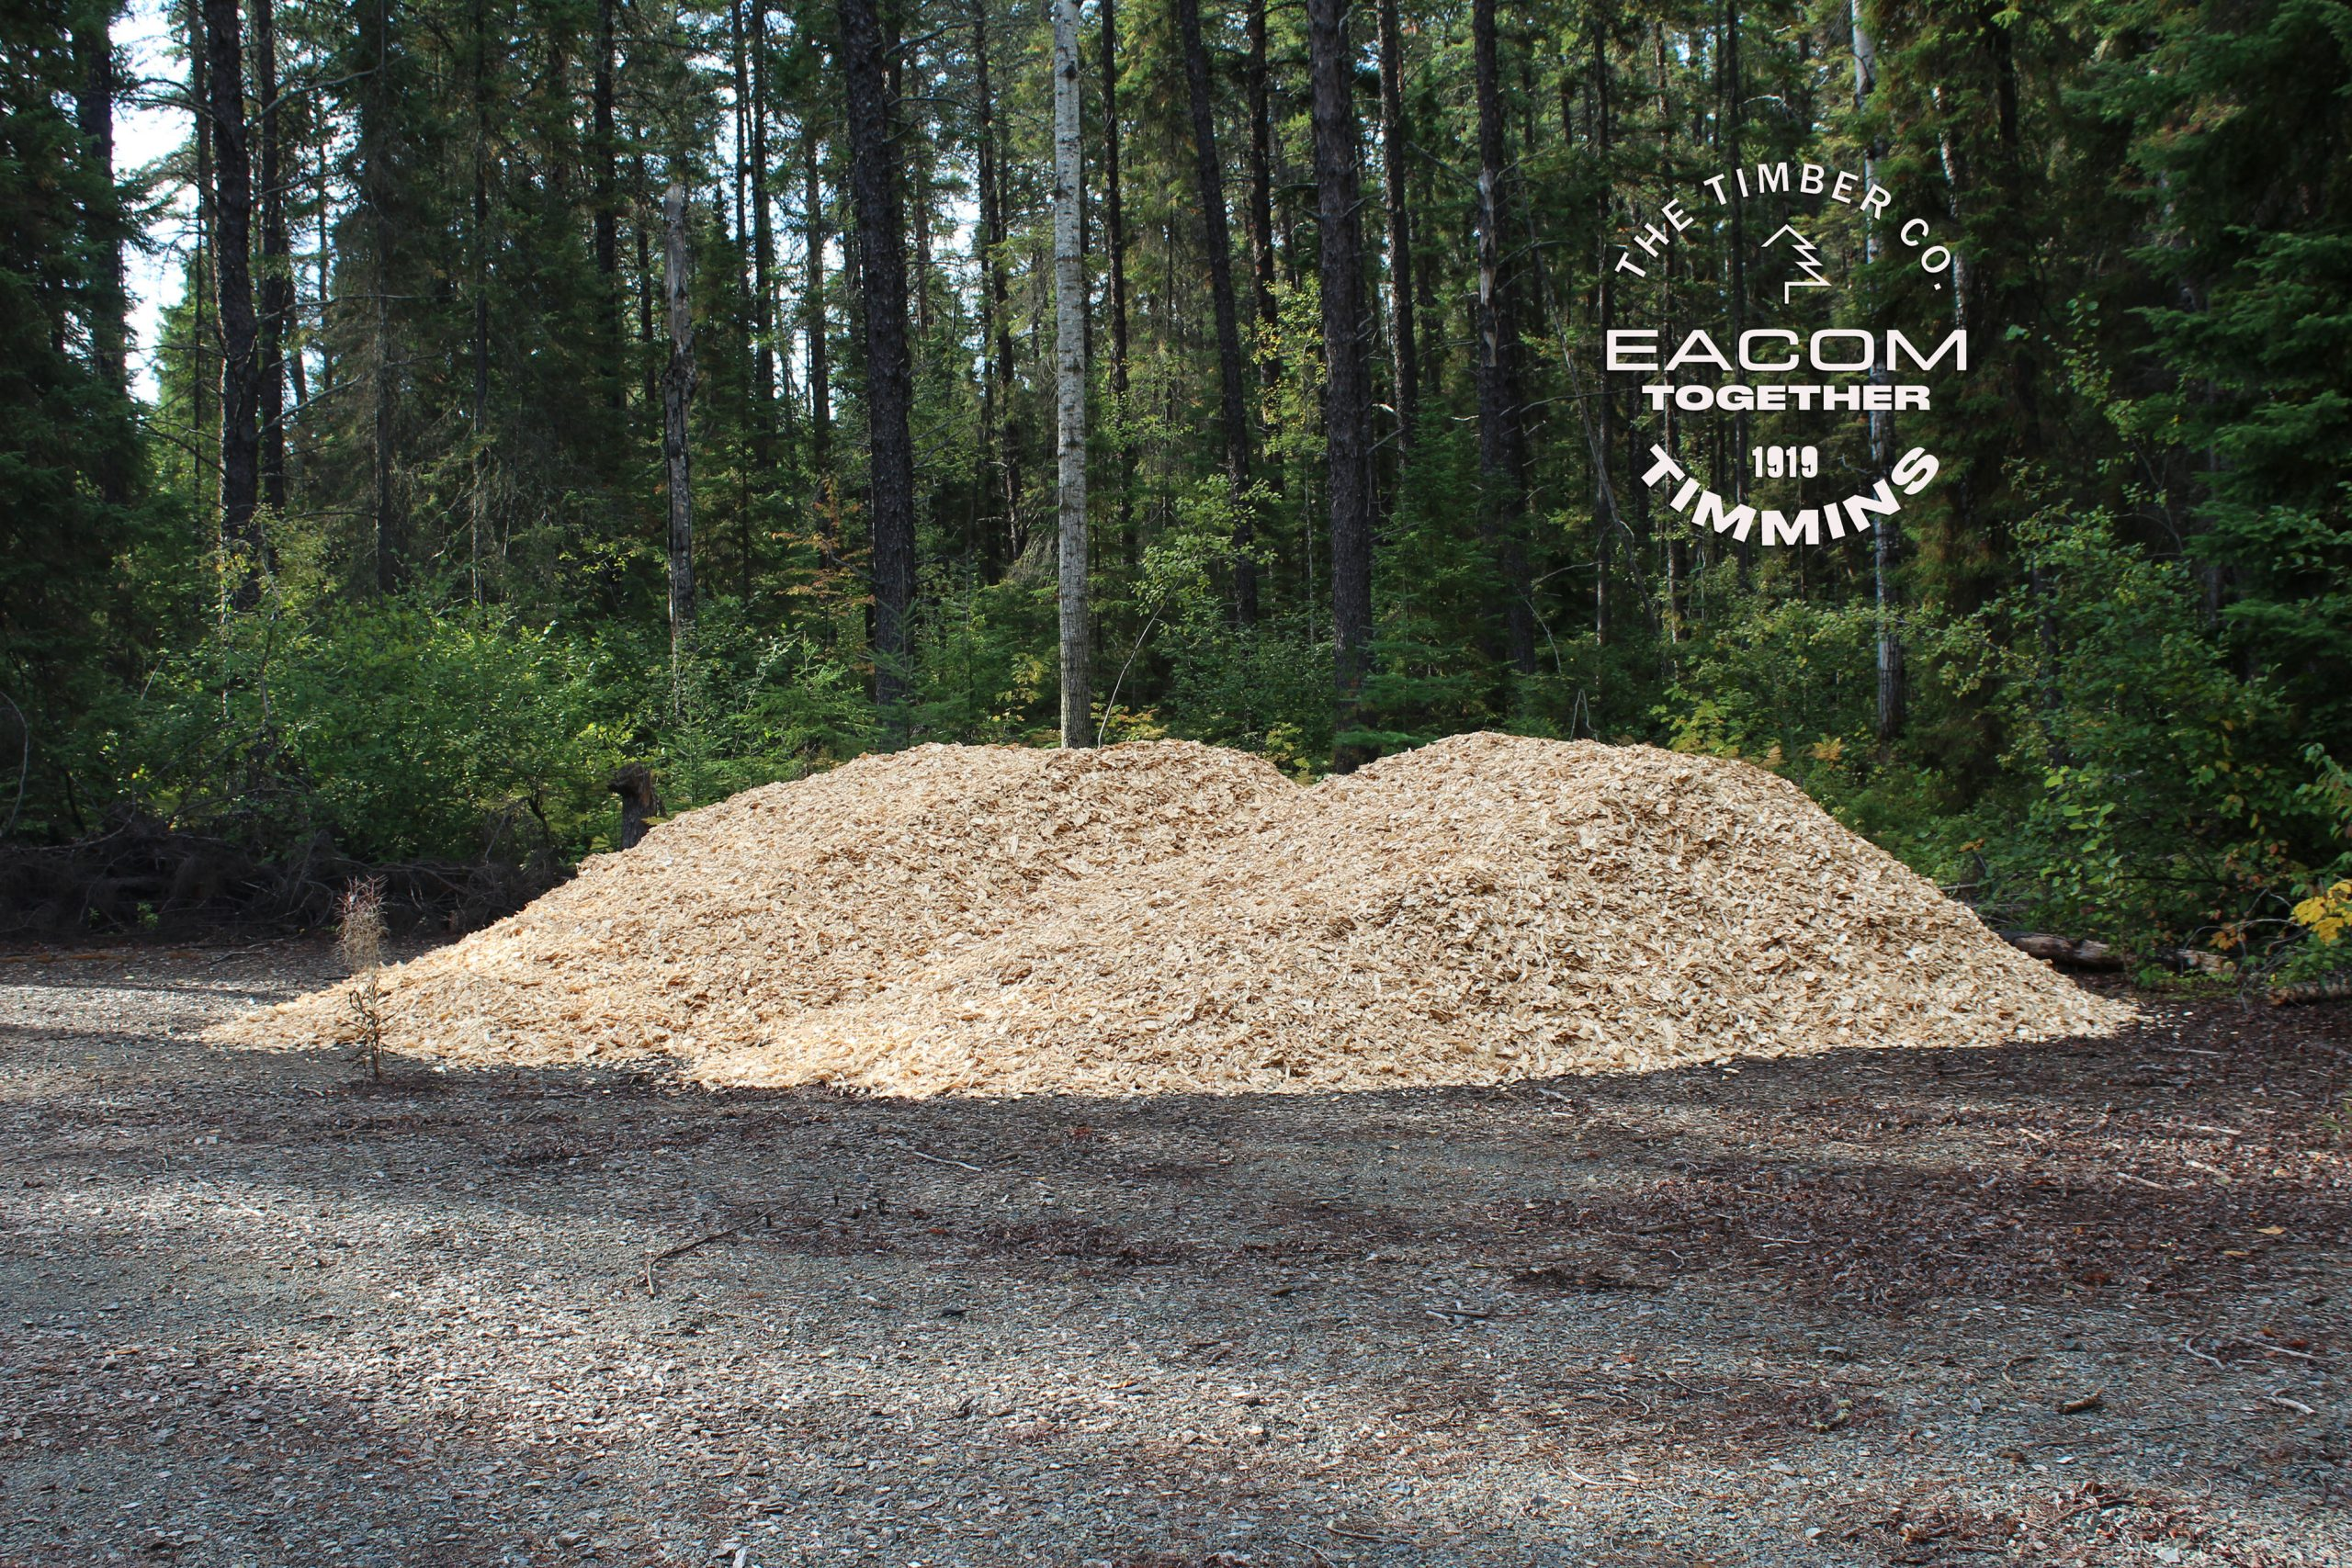 Large pile of woodchips donated by Eacom Timber